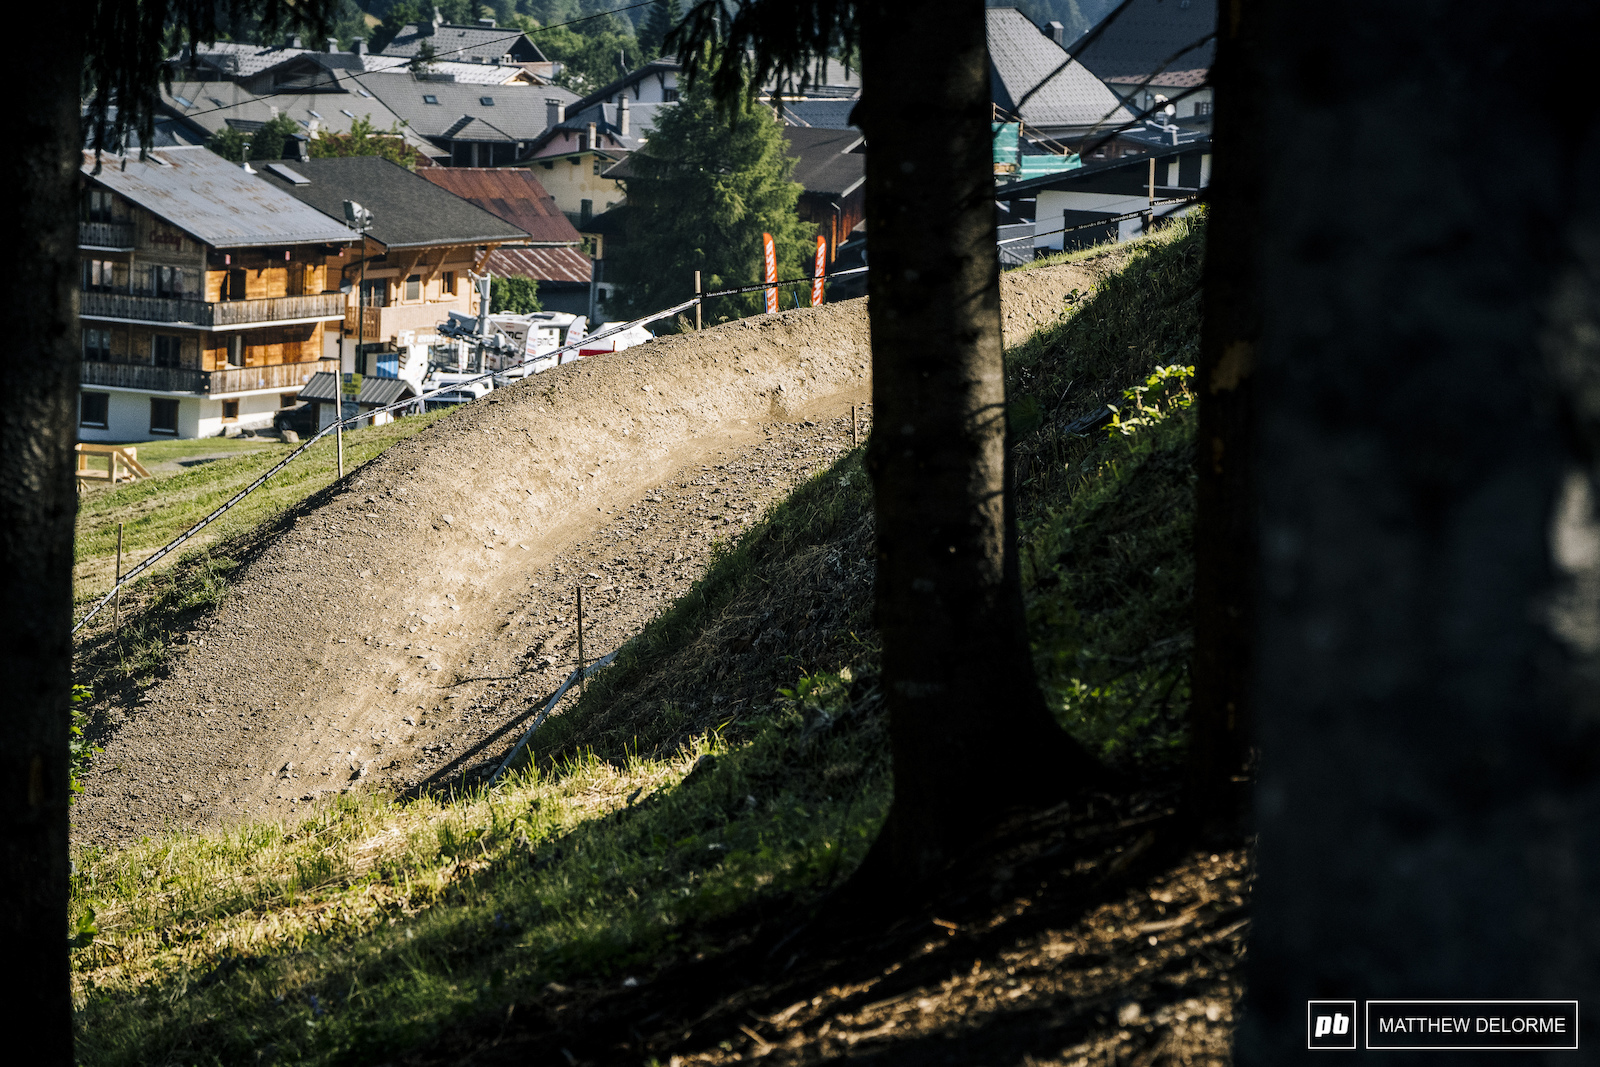 Dual Speed and Style berms could get wild with a bunch of riders on them at once.